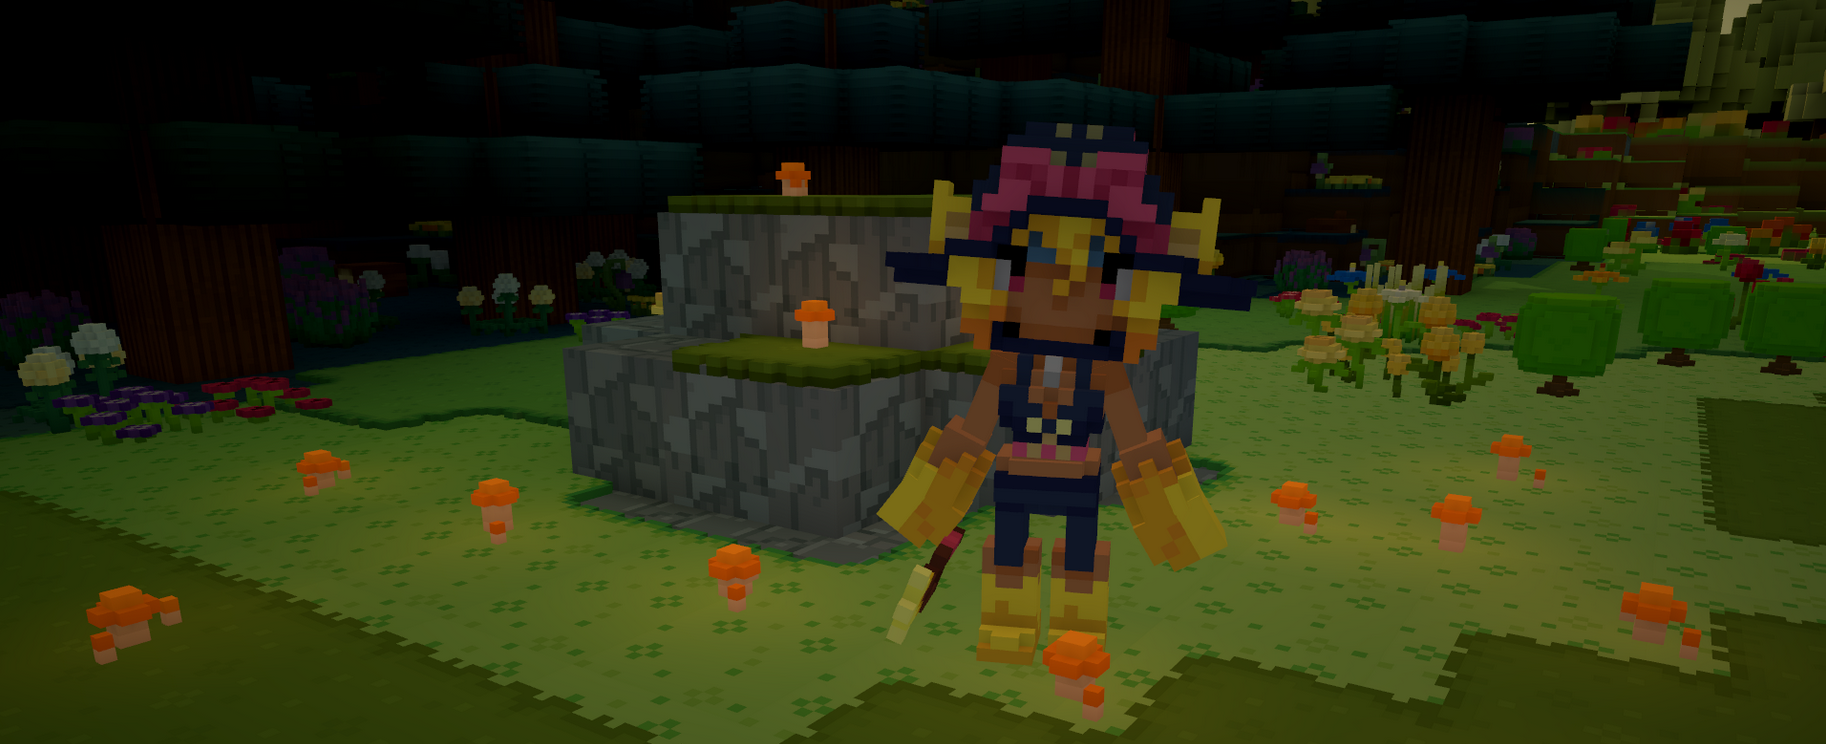 Apr 14 Farming game Staxel gains features, leaves Early Access